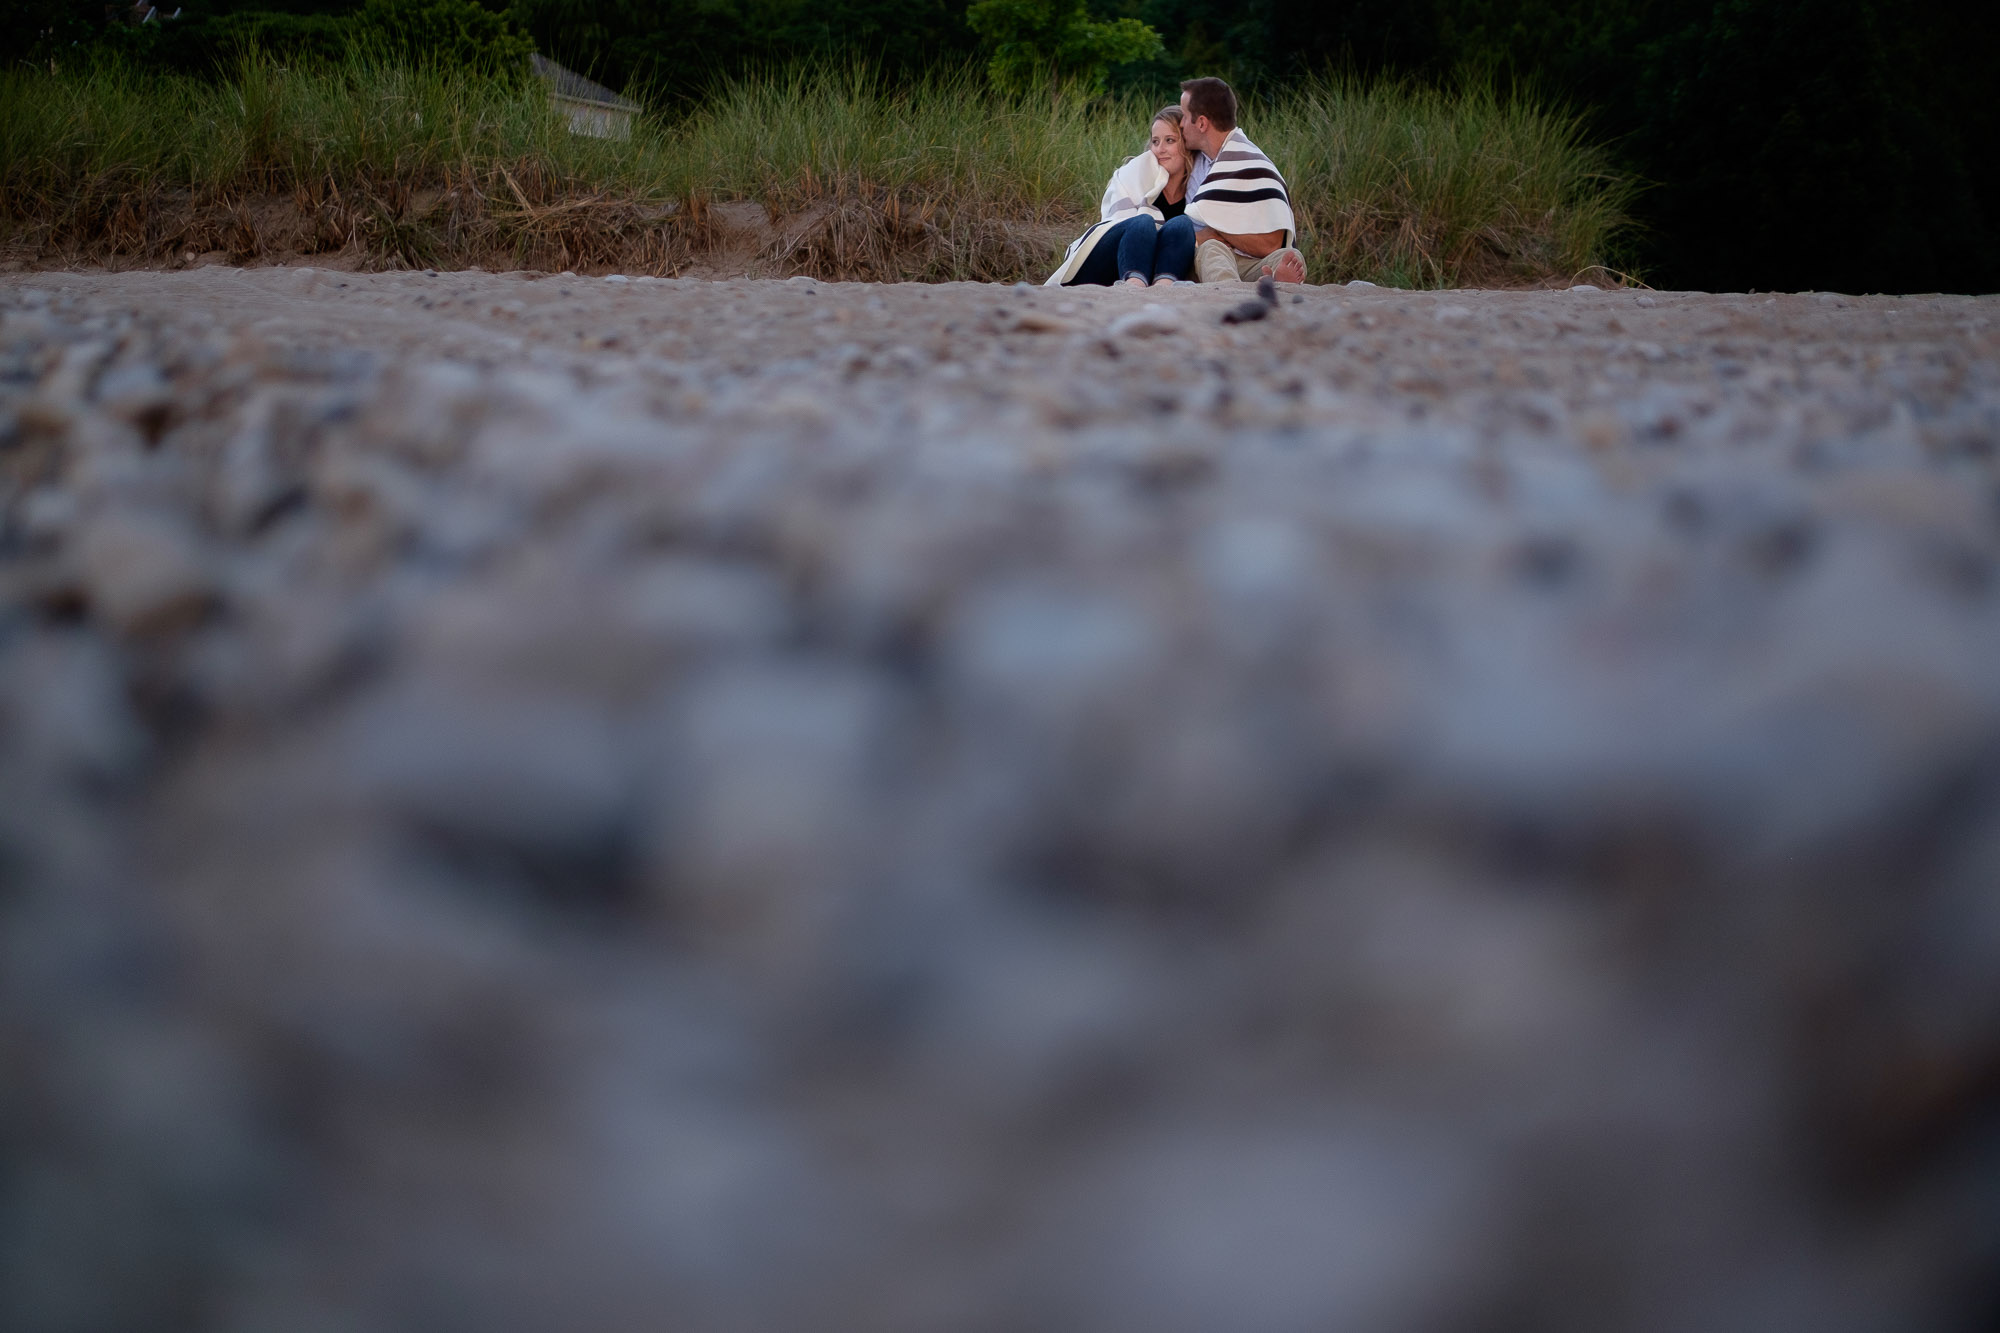 Alex + Colton stay warm under a blanket on a rocky beach during their Goderich engagement shoot.